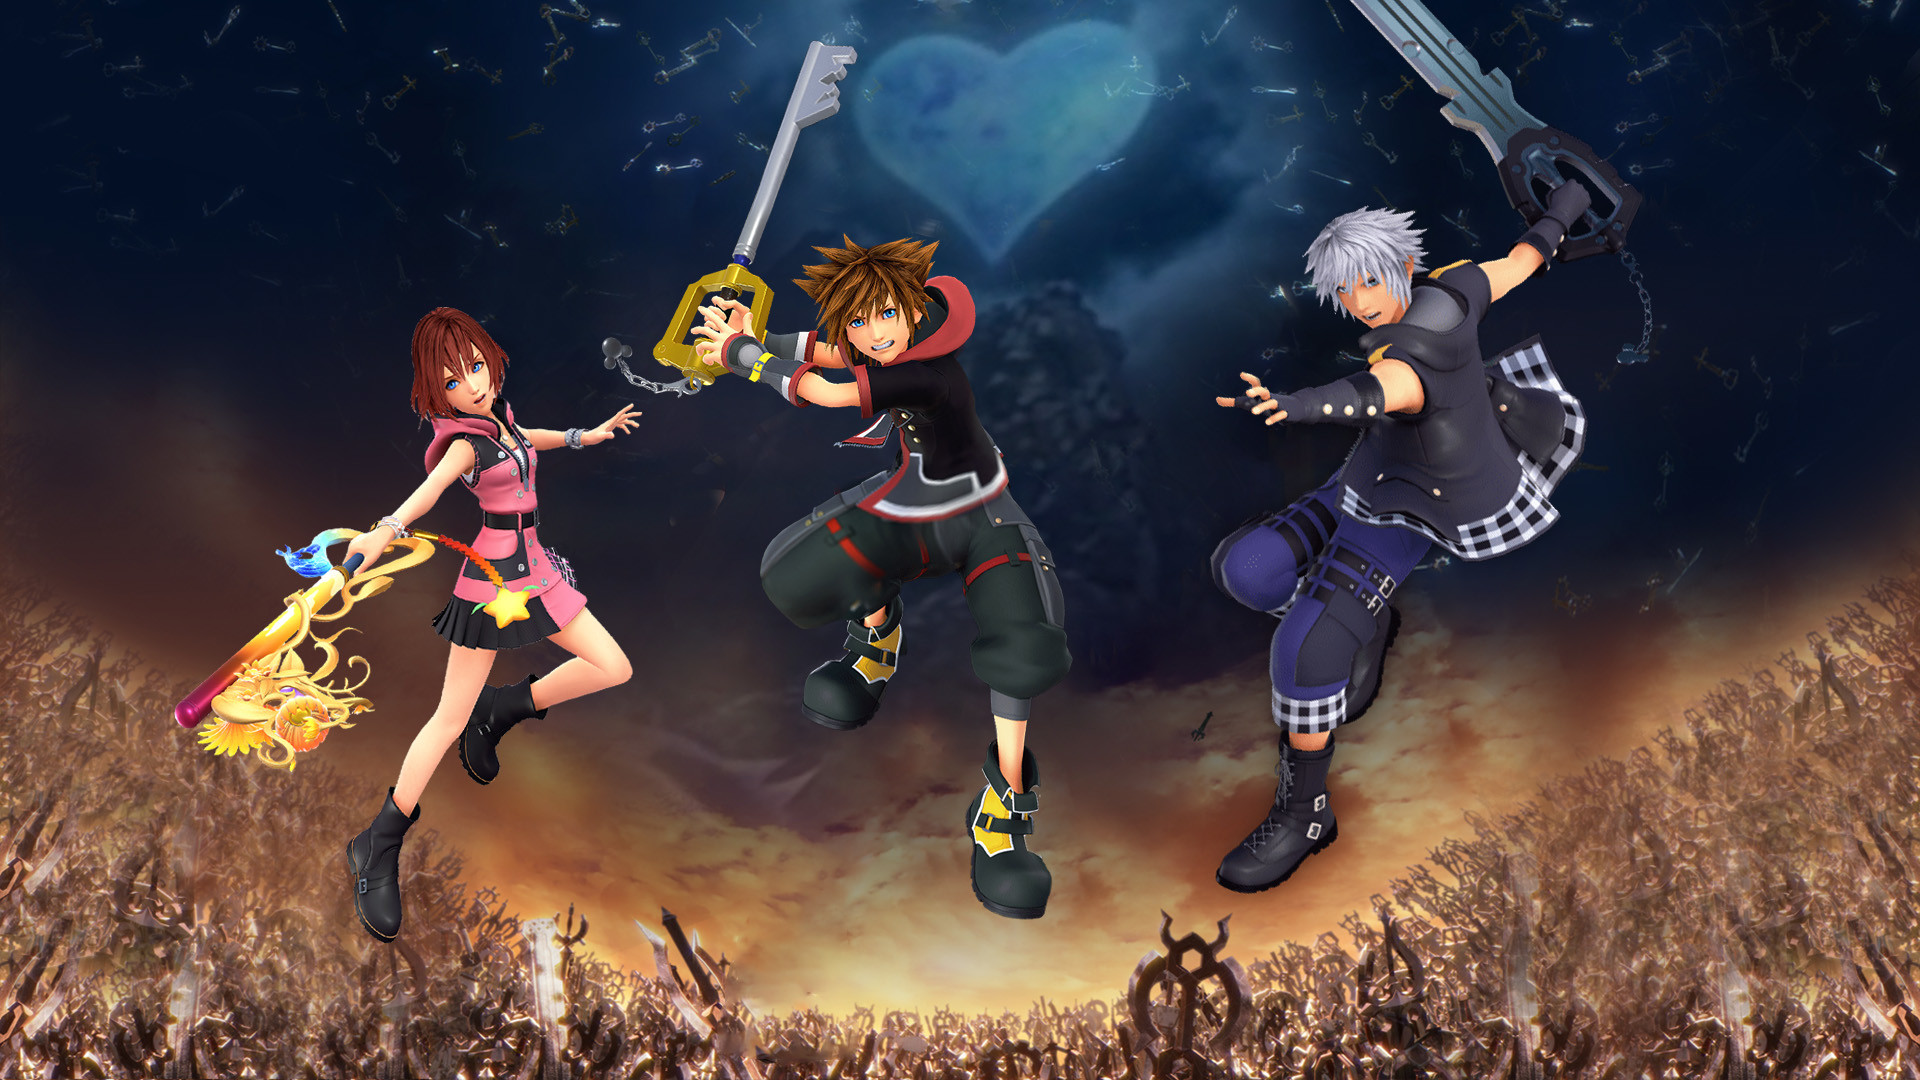 Res: 1920x1080, ... Kingdom Hearts III - Sora Riku Kairi Wallpaper by The-Dark-Mamba-995